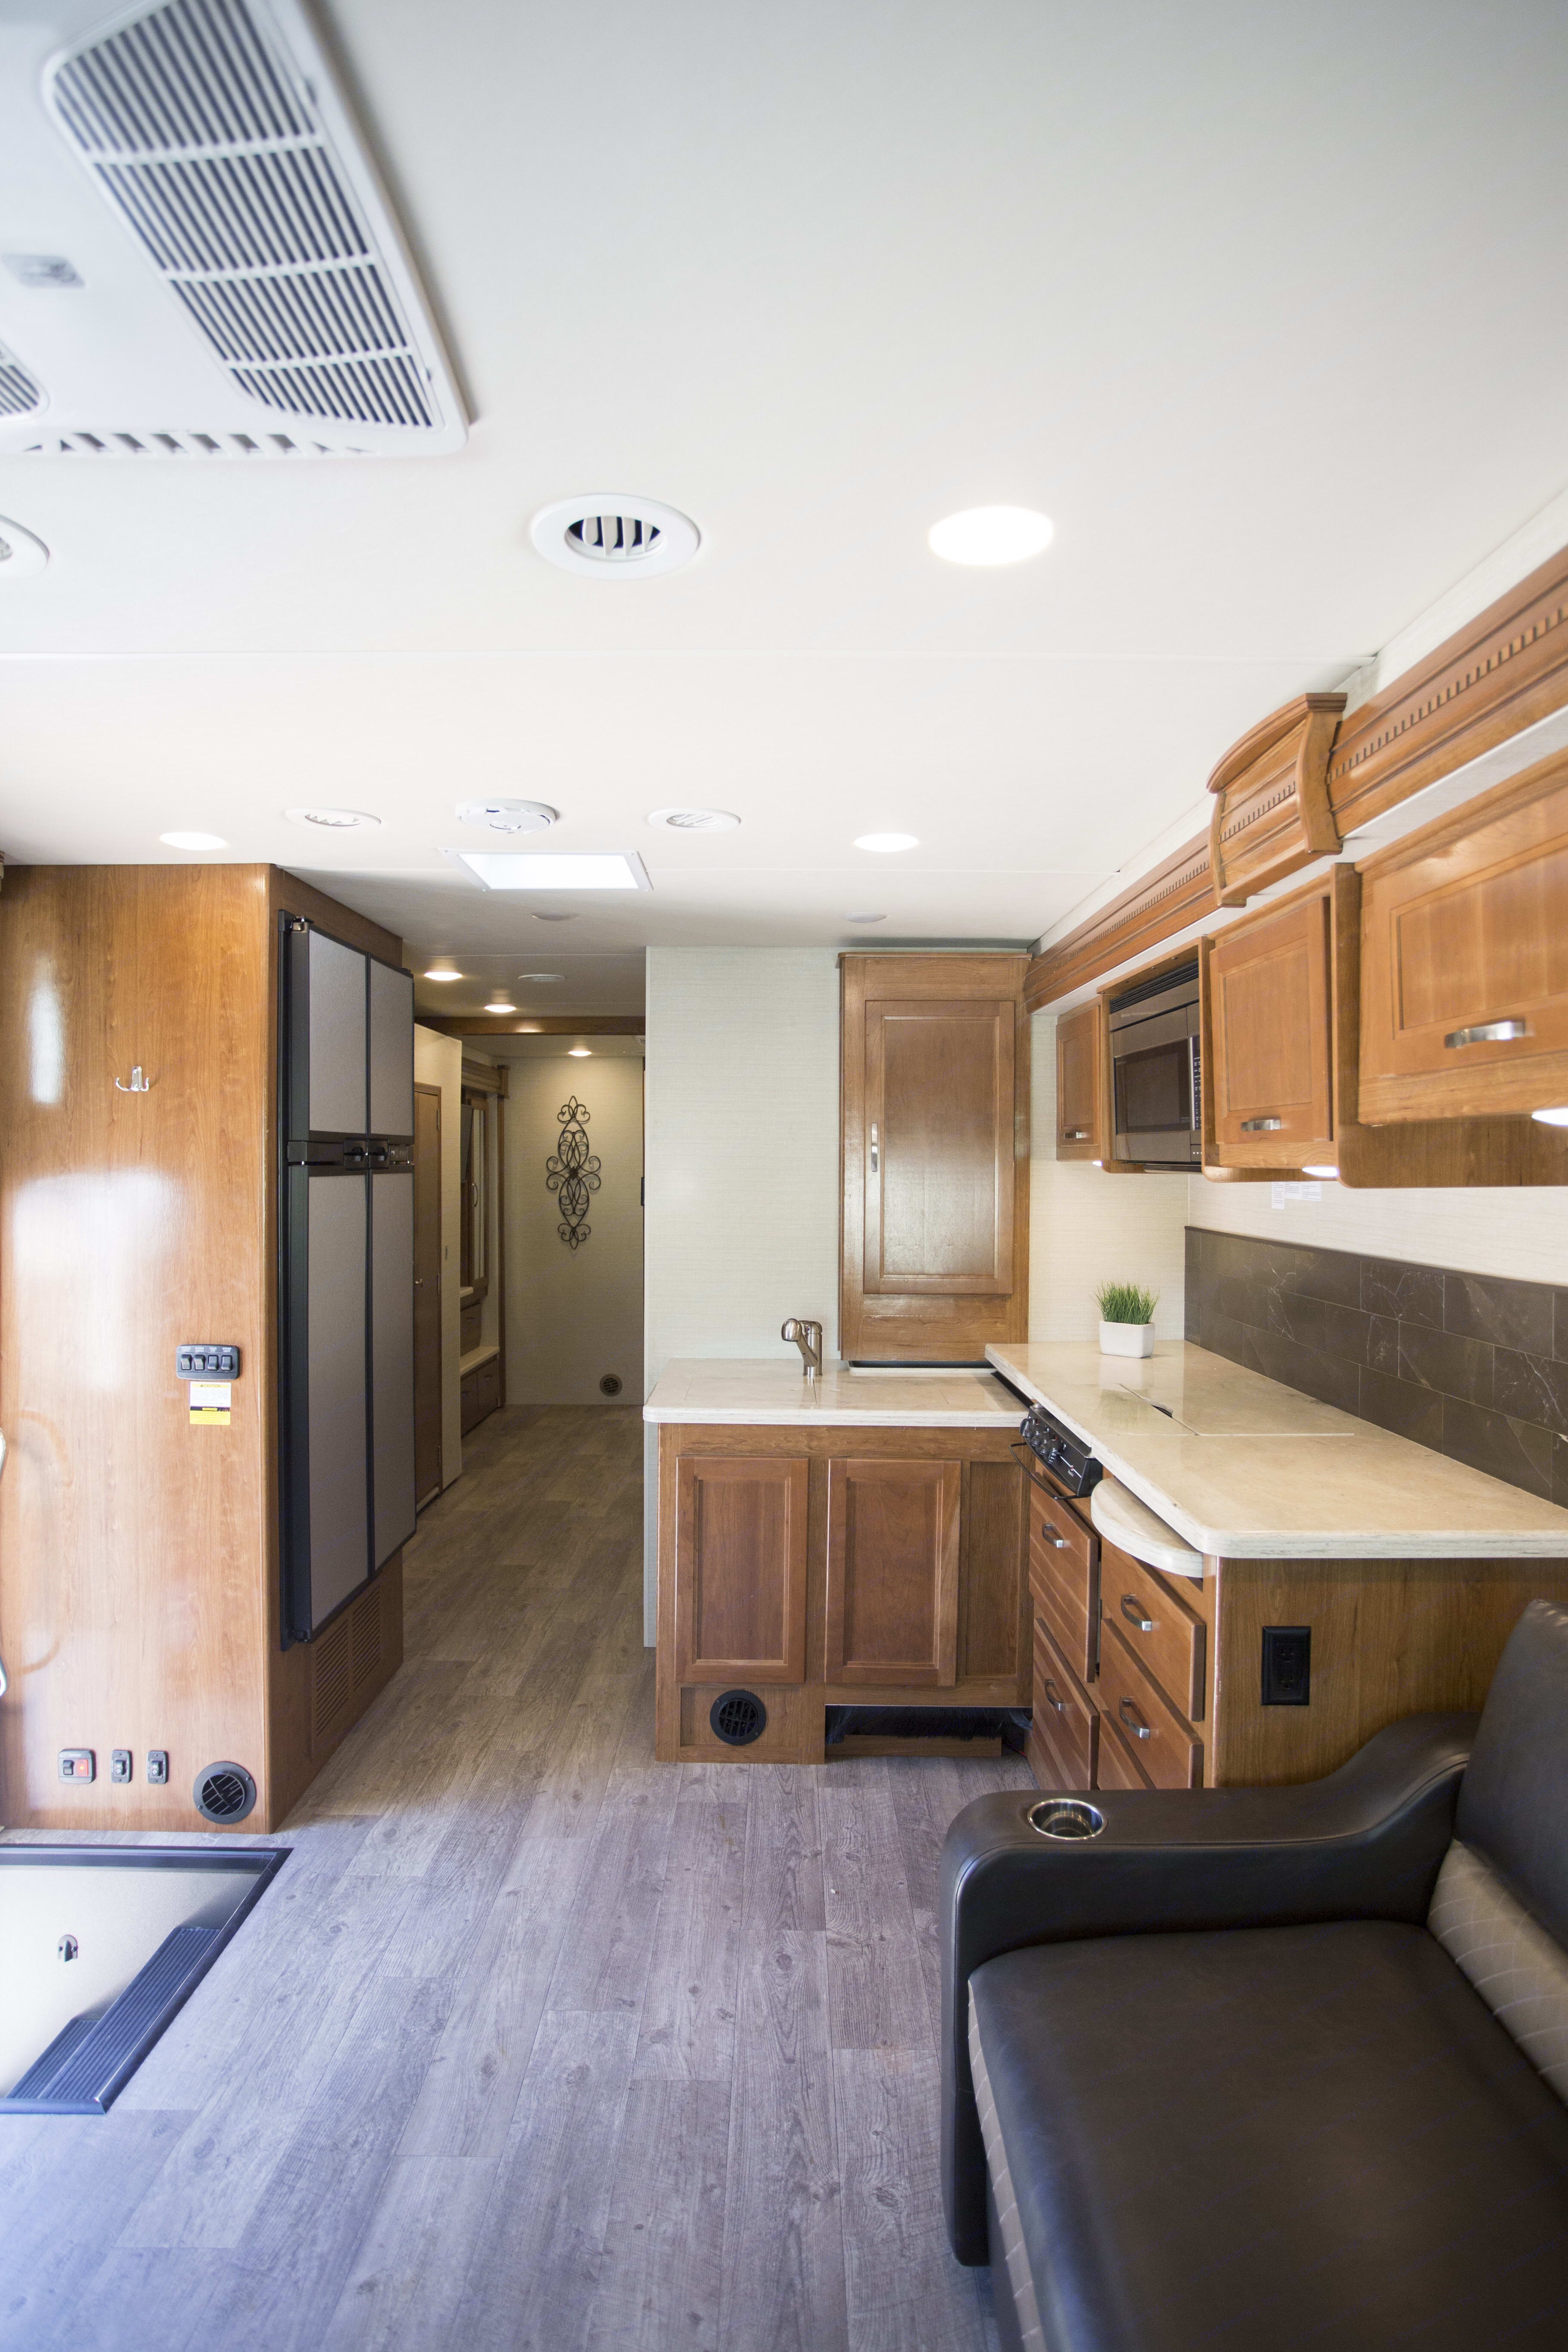 Almost a full size refrigerator with plenty of room to cook.  3 Burners available. Jayco Precept 2018